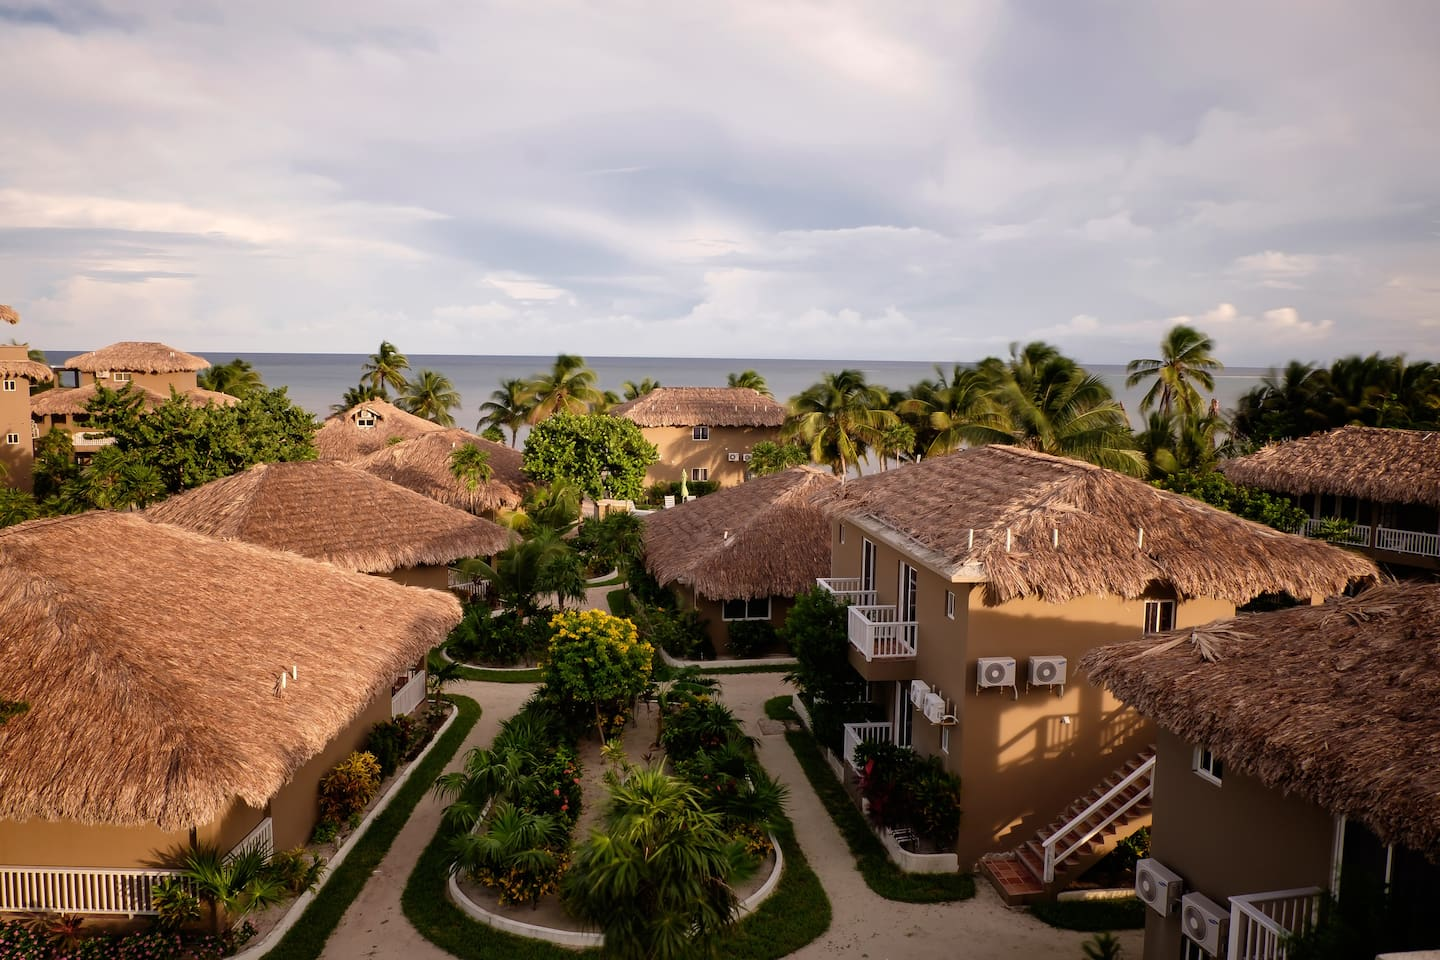 Our beautiful and secluded resort.